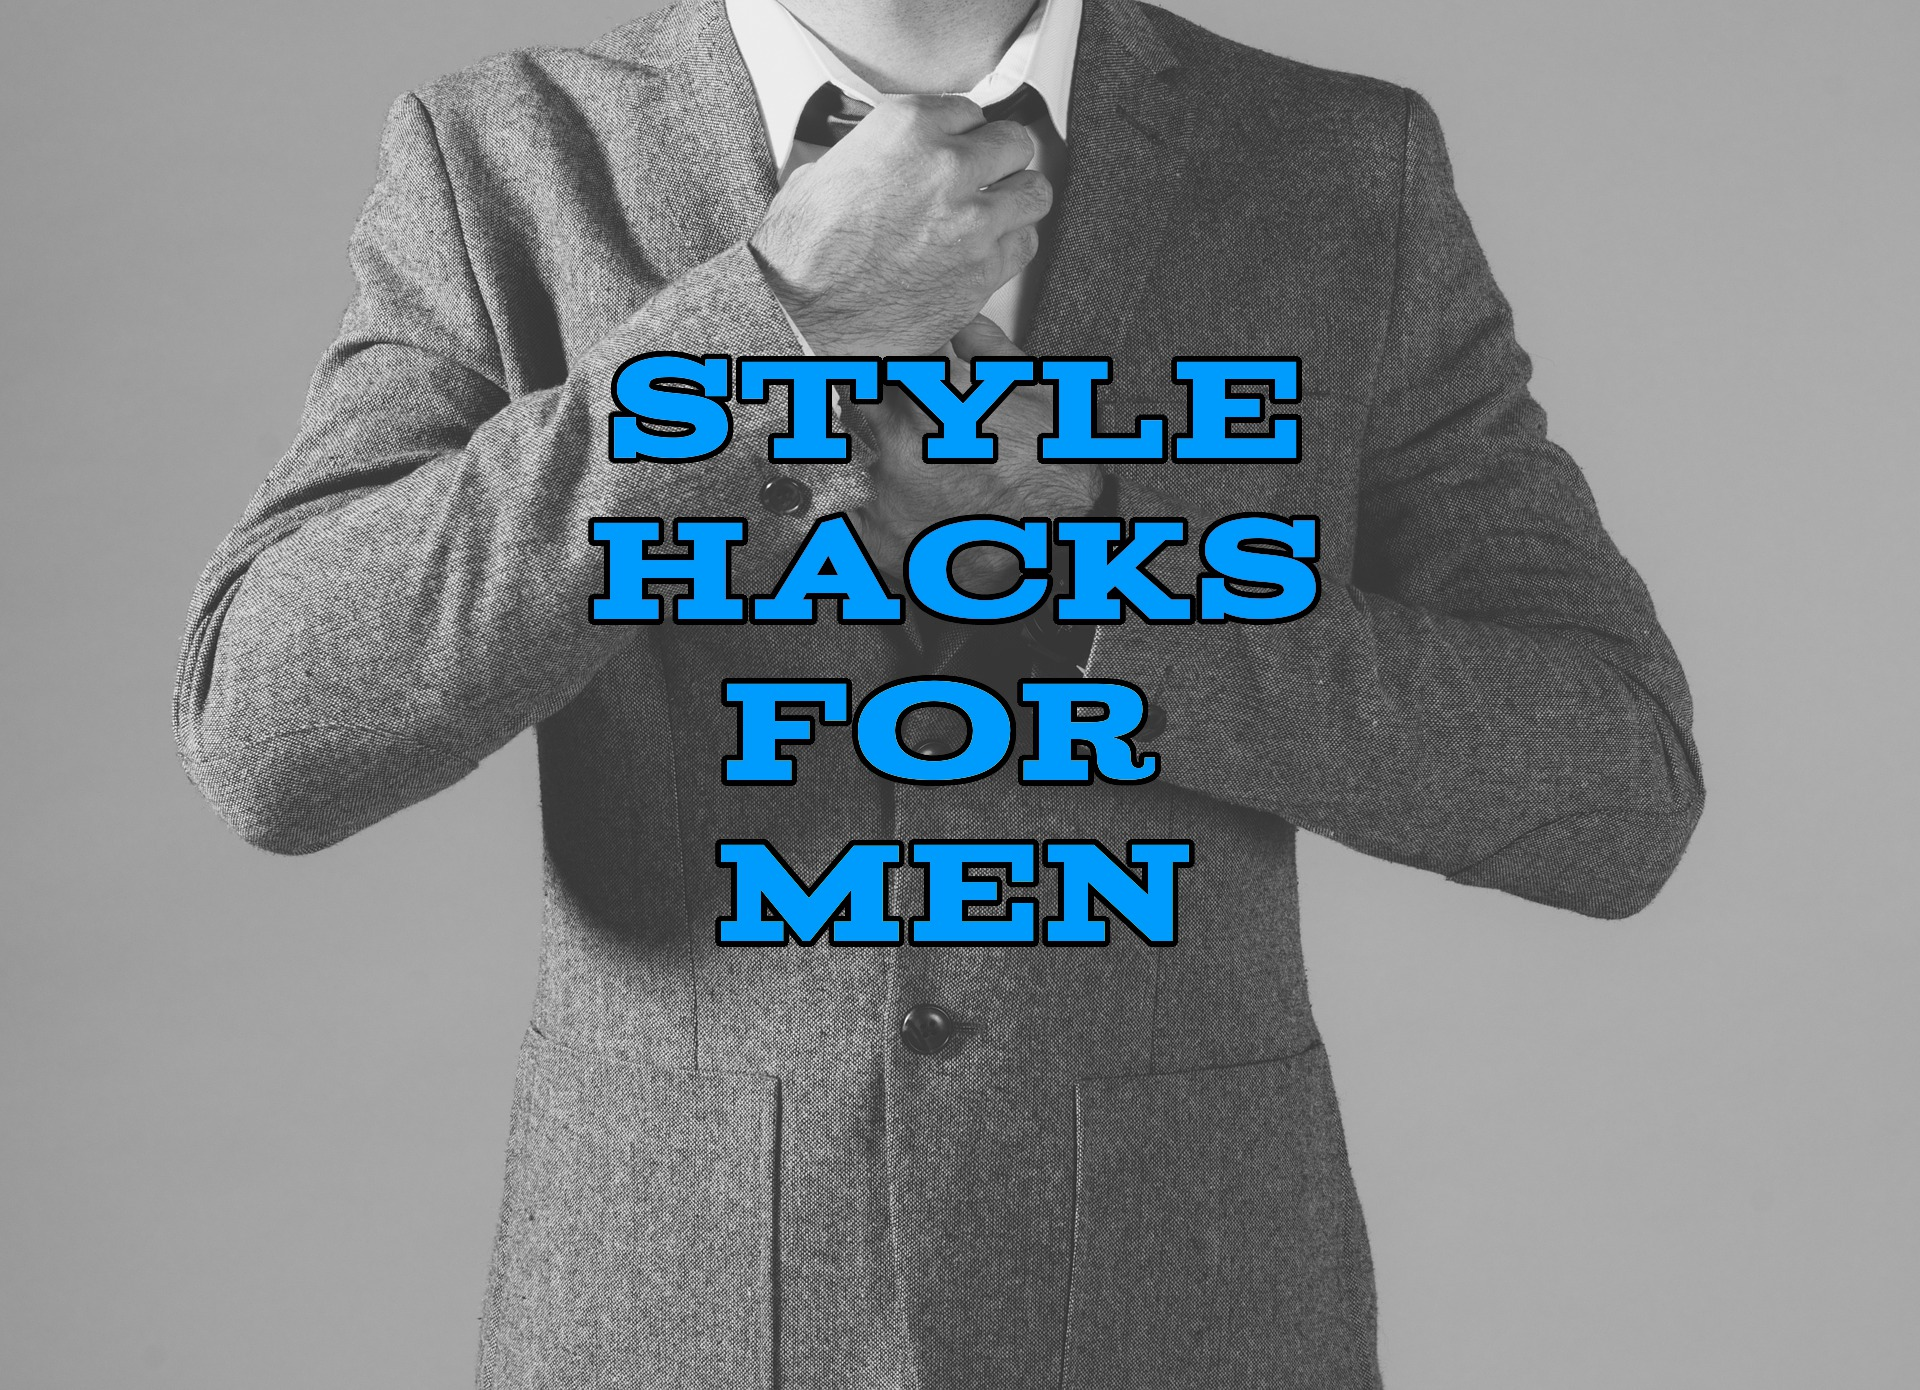 8 Quick Men's Fashion And Grooming Hacks